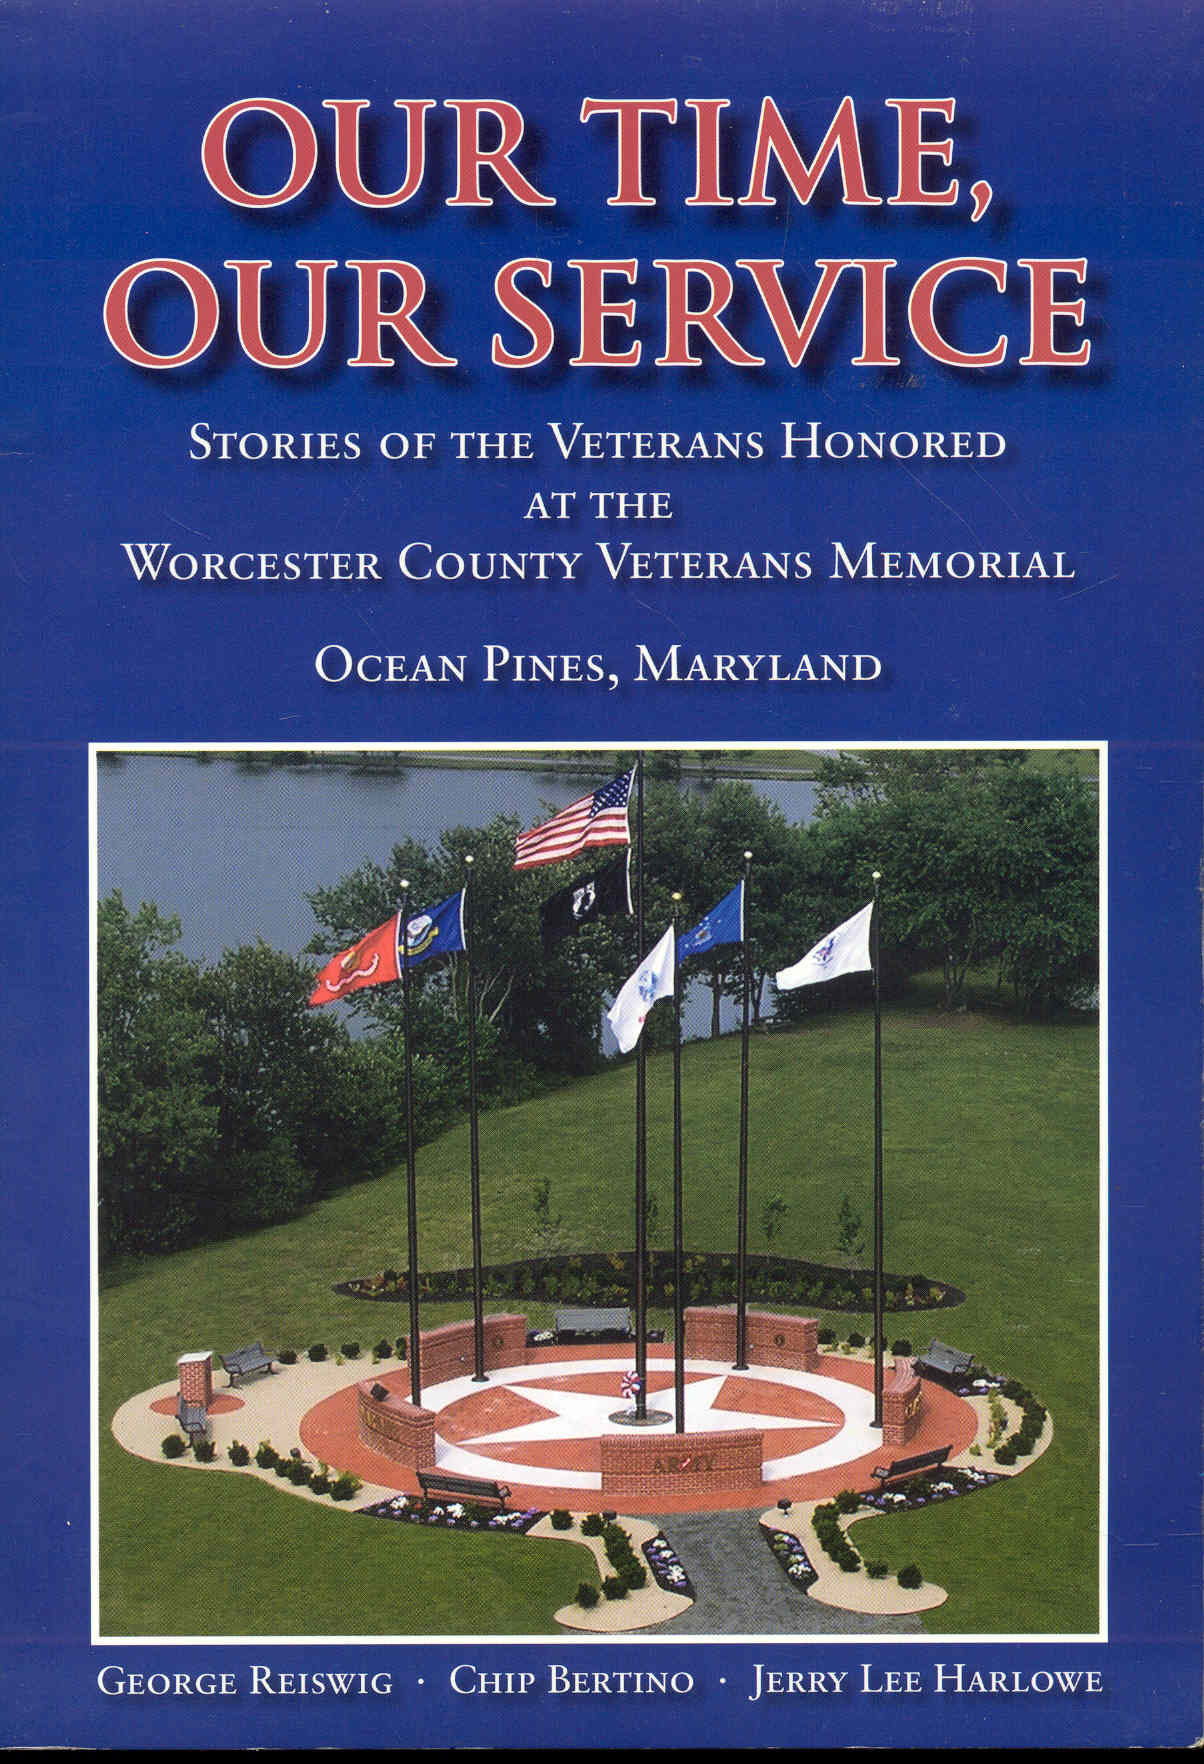 Image for Our Time, Our Service: Stories of the Veterans Honored At the Worchester County Veterans Memorial